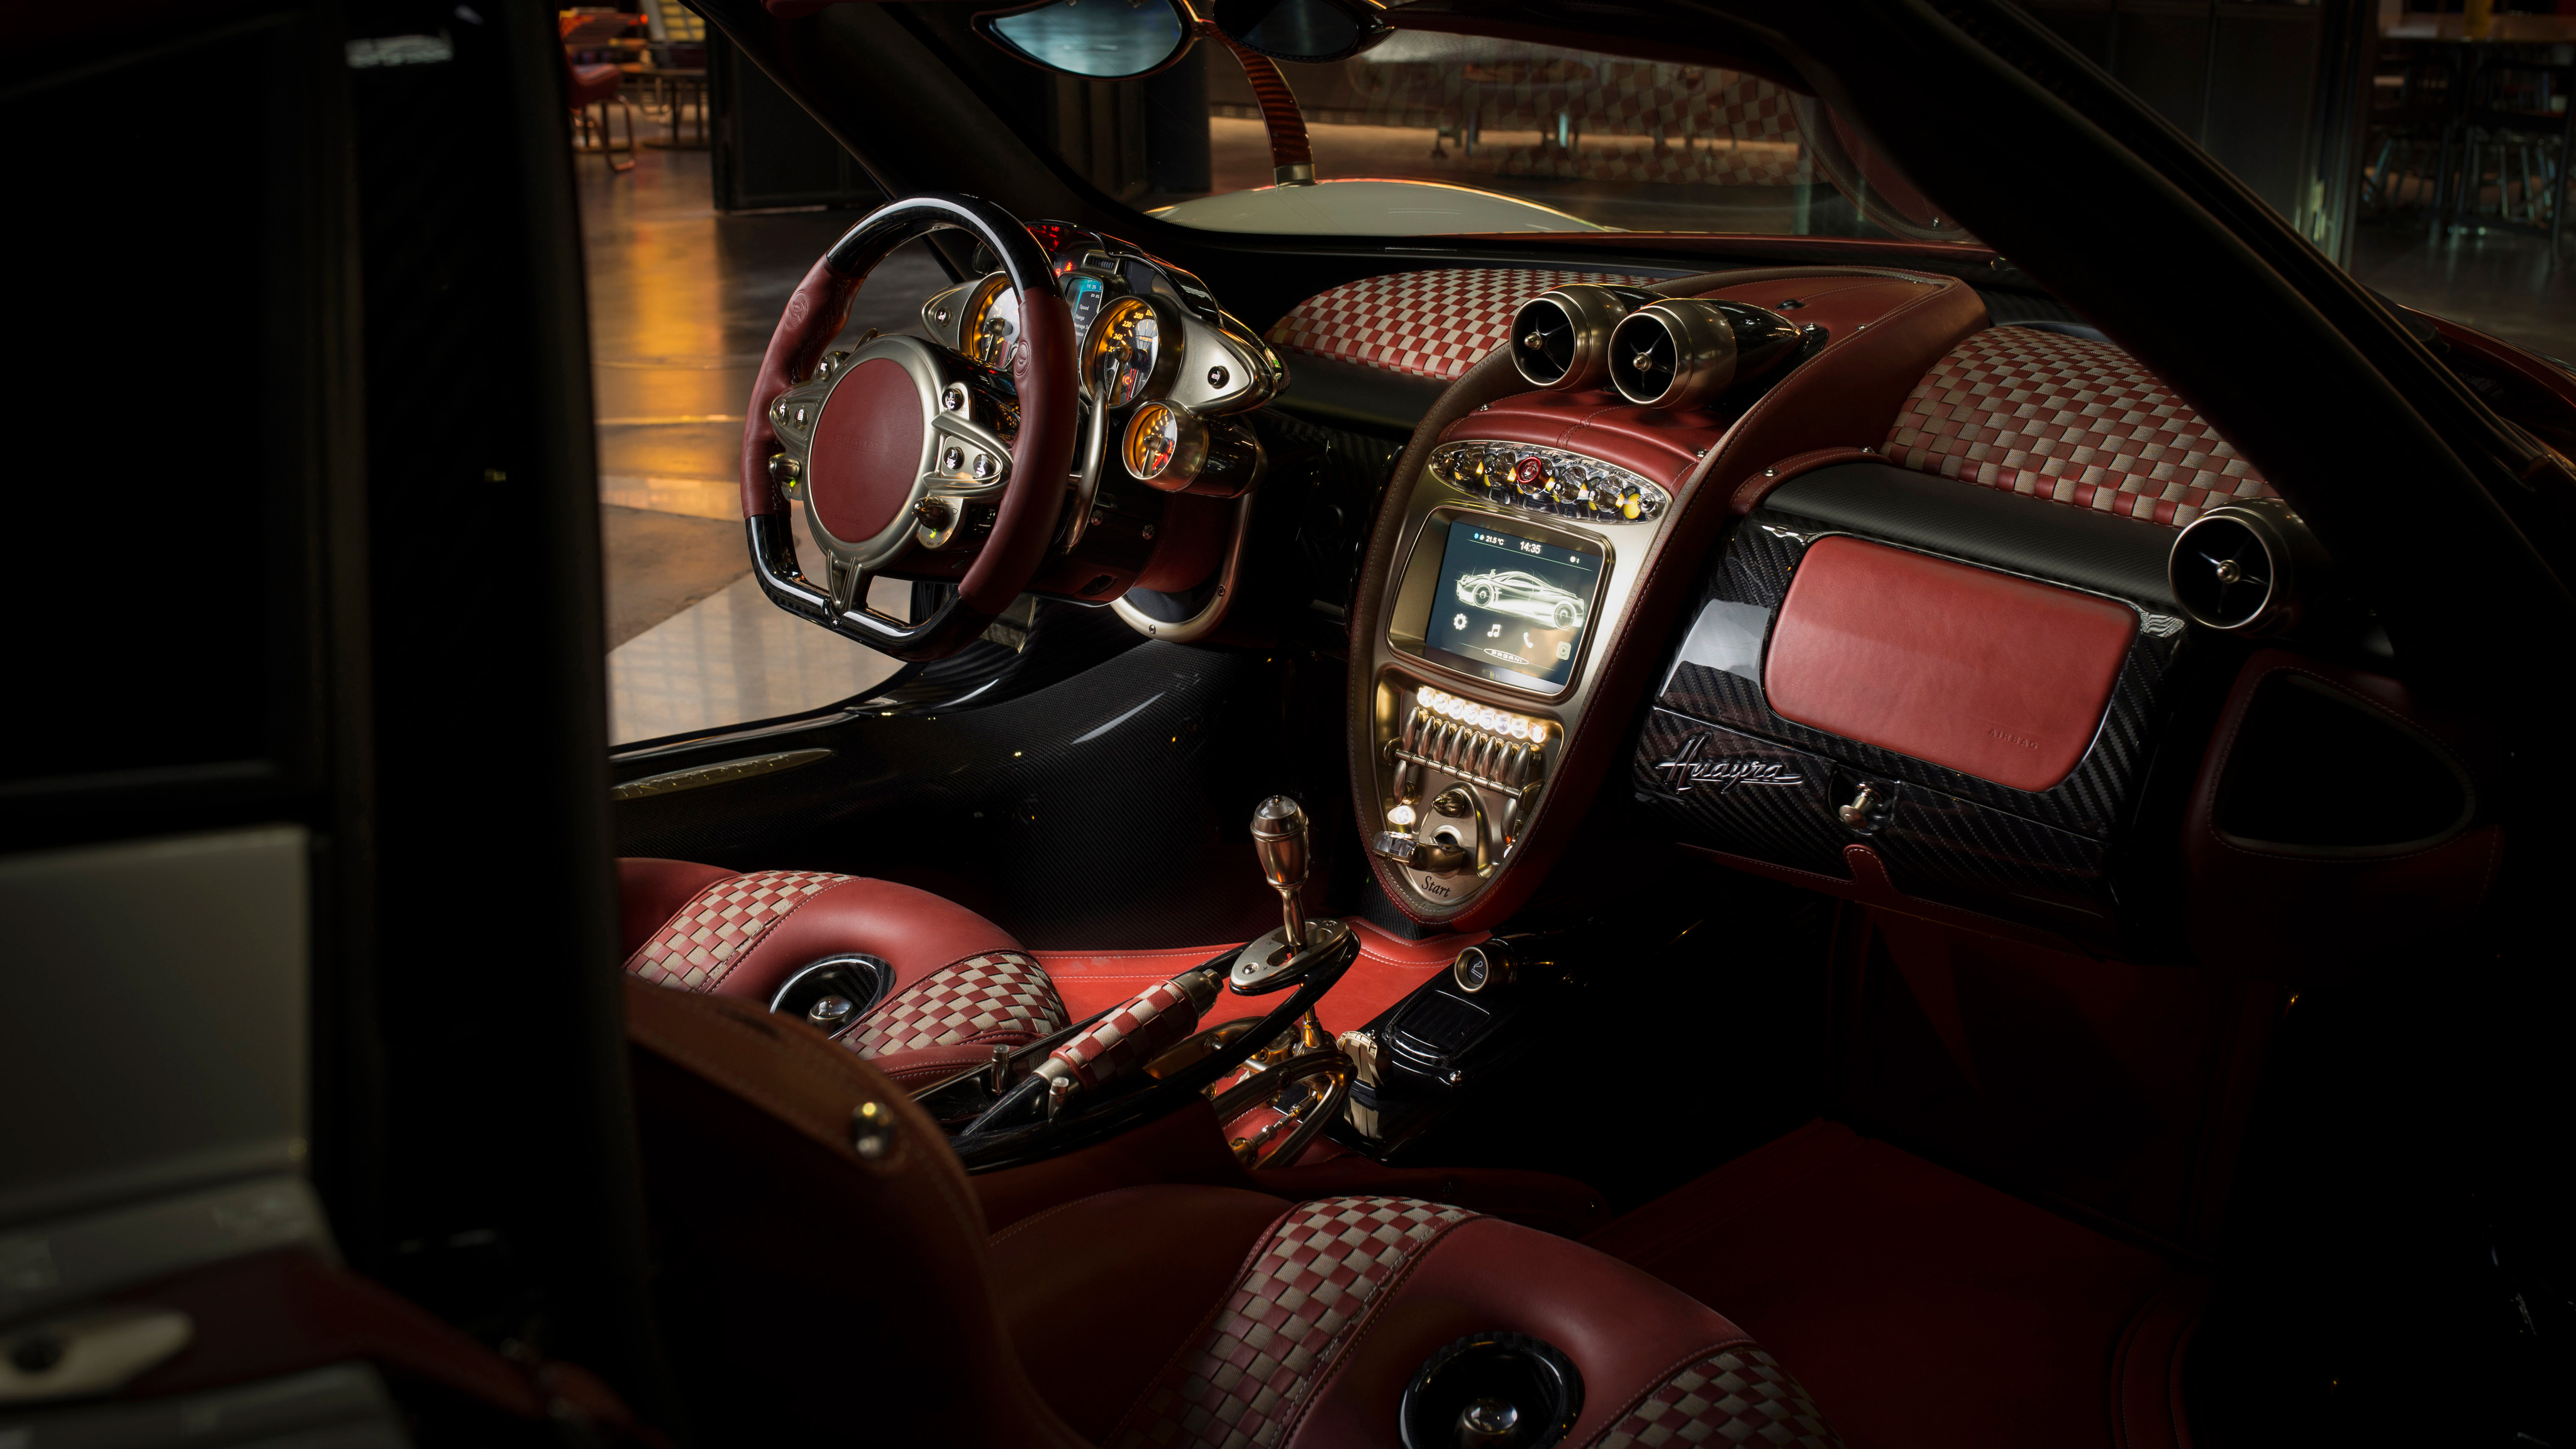 Pagani Huayra Lampo 2018 Interior Hd Cars 4k Wallpapers Images